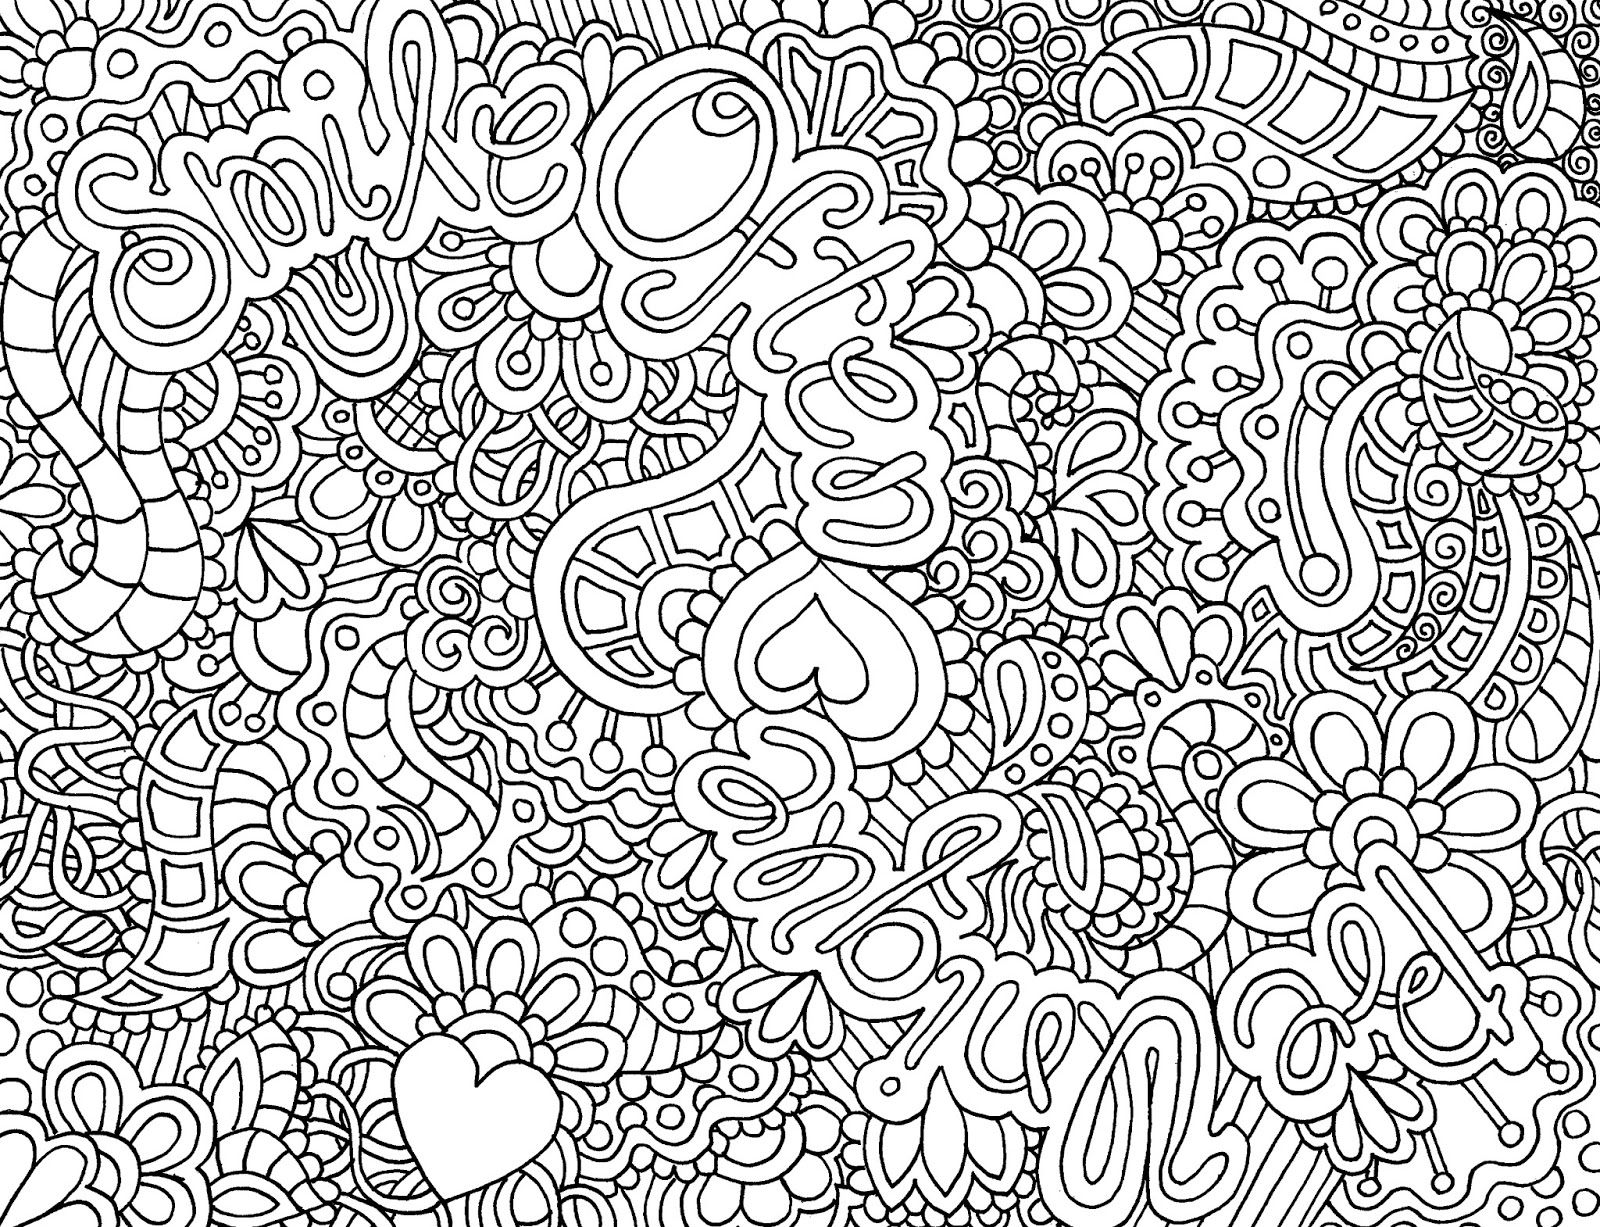 Coloring sheets with words - Coloring Pages Of Flowers For Teenagers Difficult Printable Coloring Pages Sheets For Kids Get The Latest Free Coloring Pages Of Flowers For Teenagers